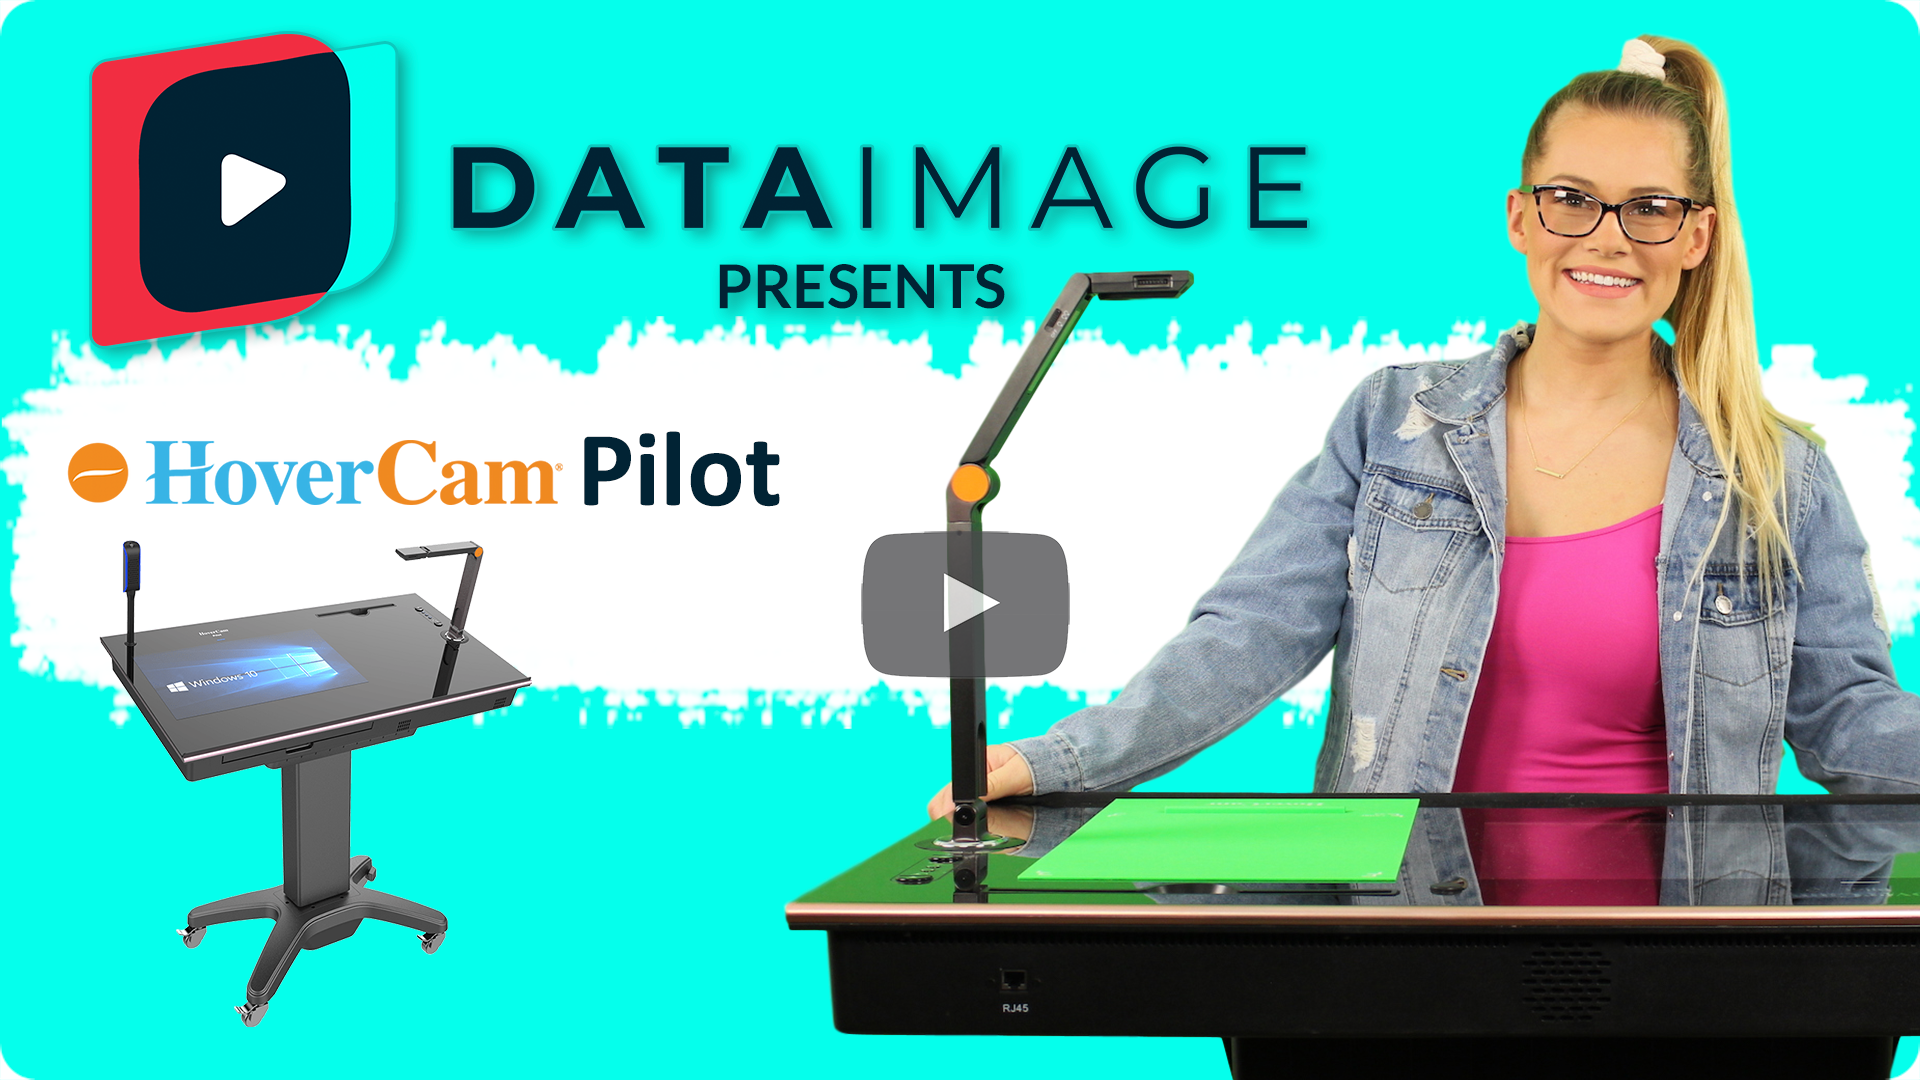 Data Image Presents the HoverCam Pilot 3 Wireless Digital Teaching Station